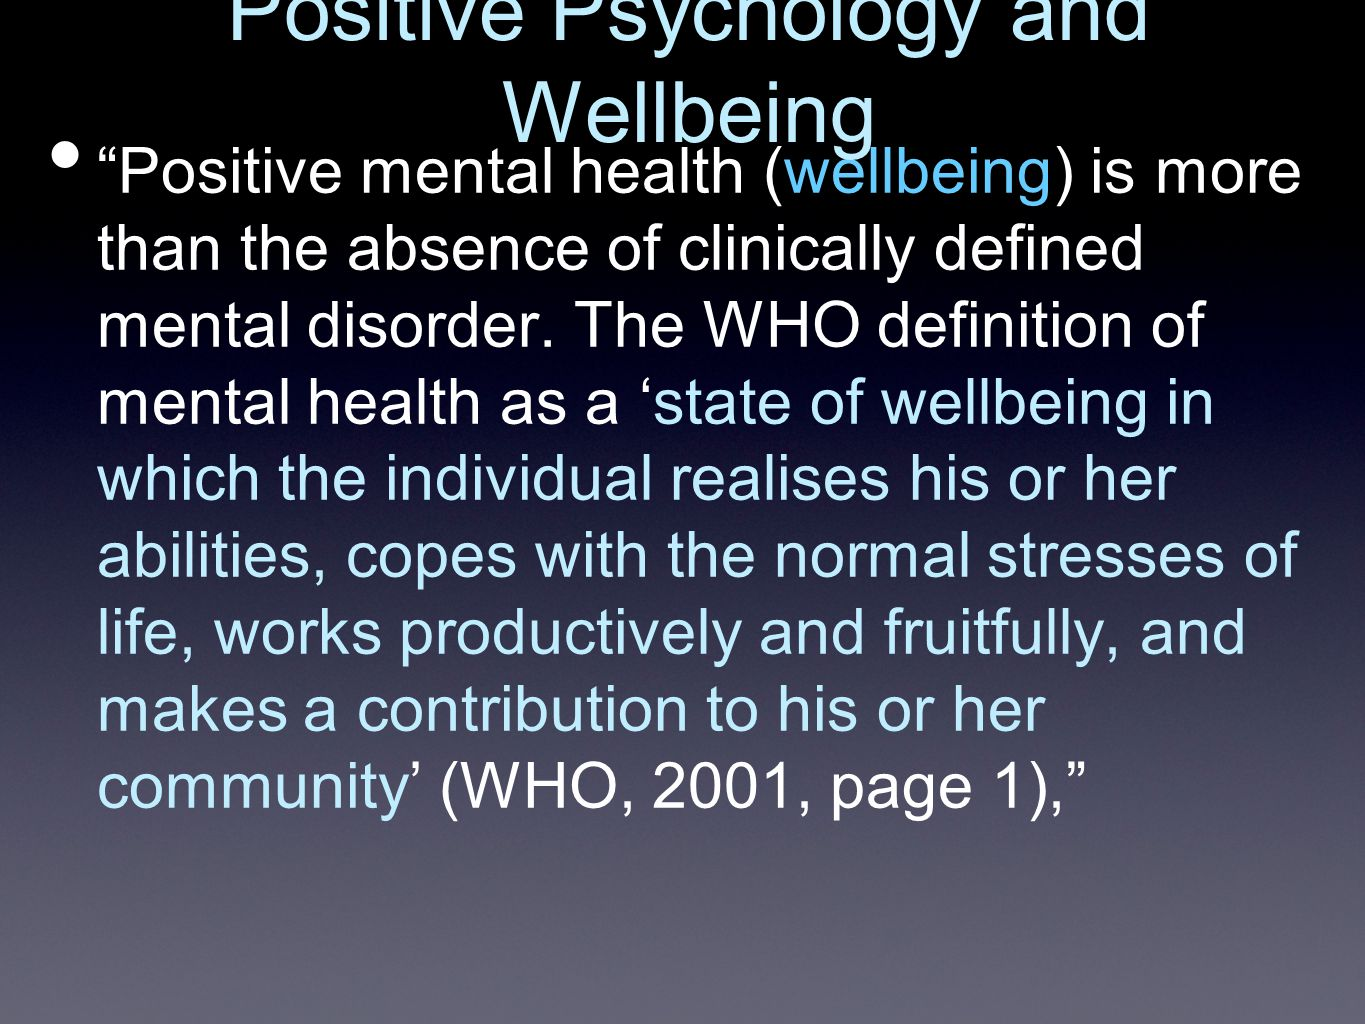 Positive mental health (wellbeing) is more than the absence of clinically defined mental disorder.